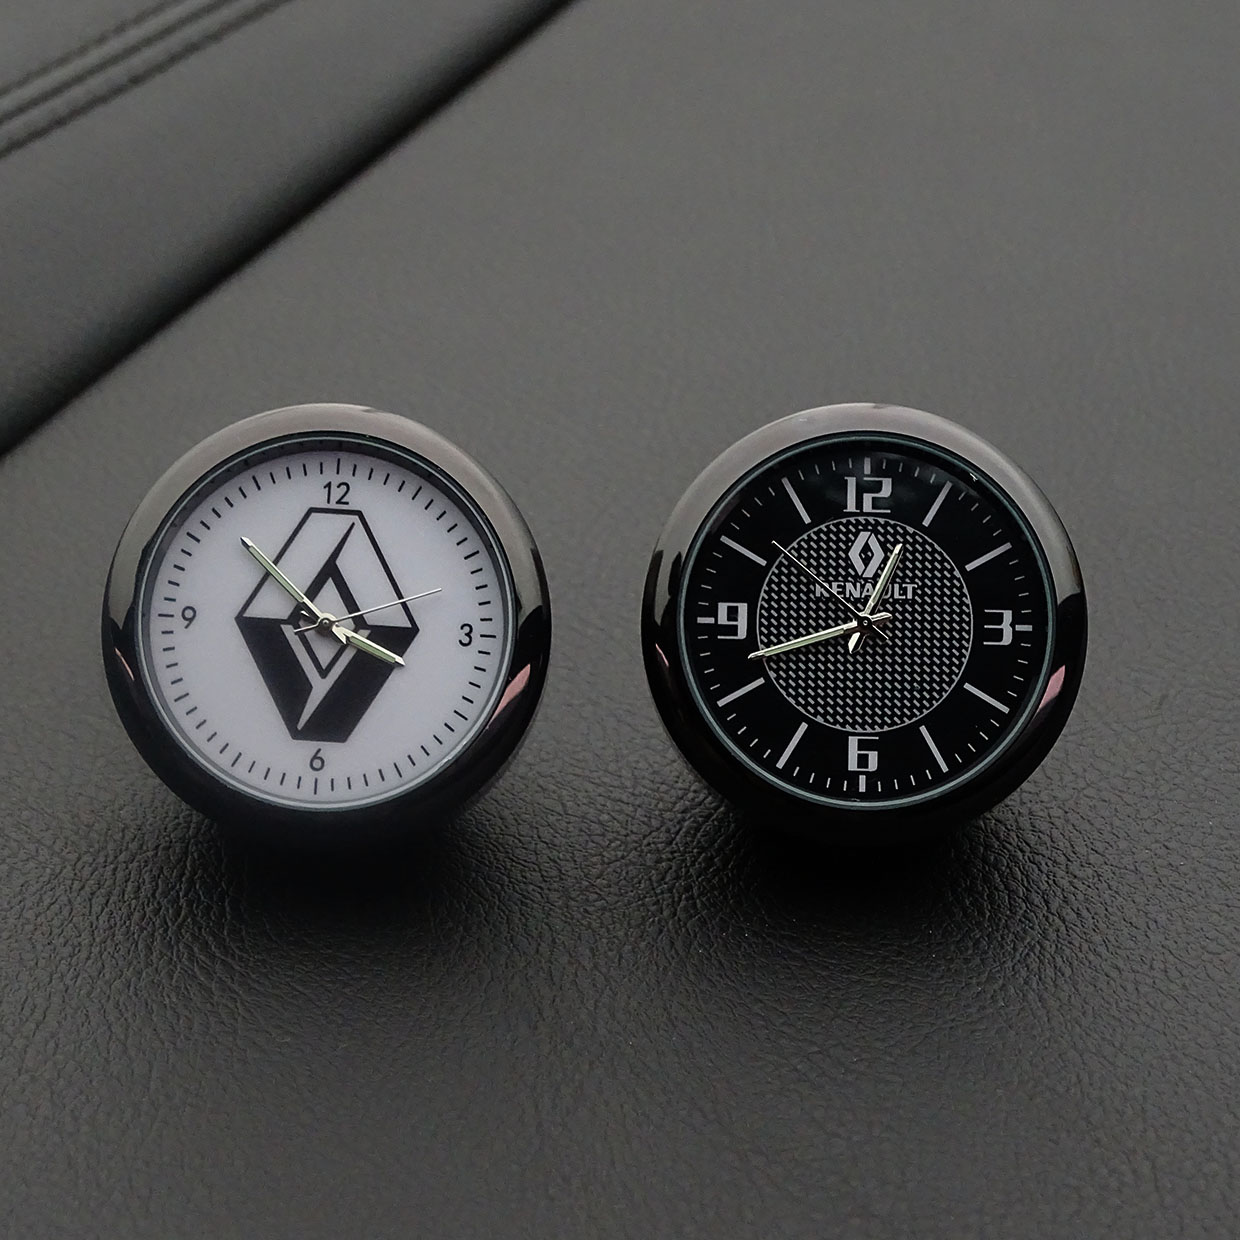 Car decoration clock watch modified car interior electronic quartz watch For Renault Megane2 3 Duster Logan Clio Laguna 2 Captur